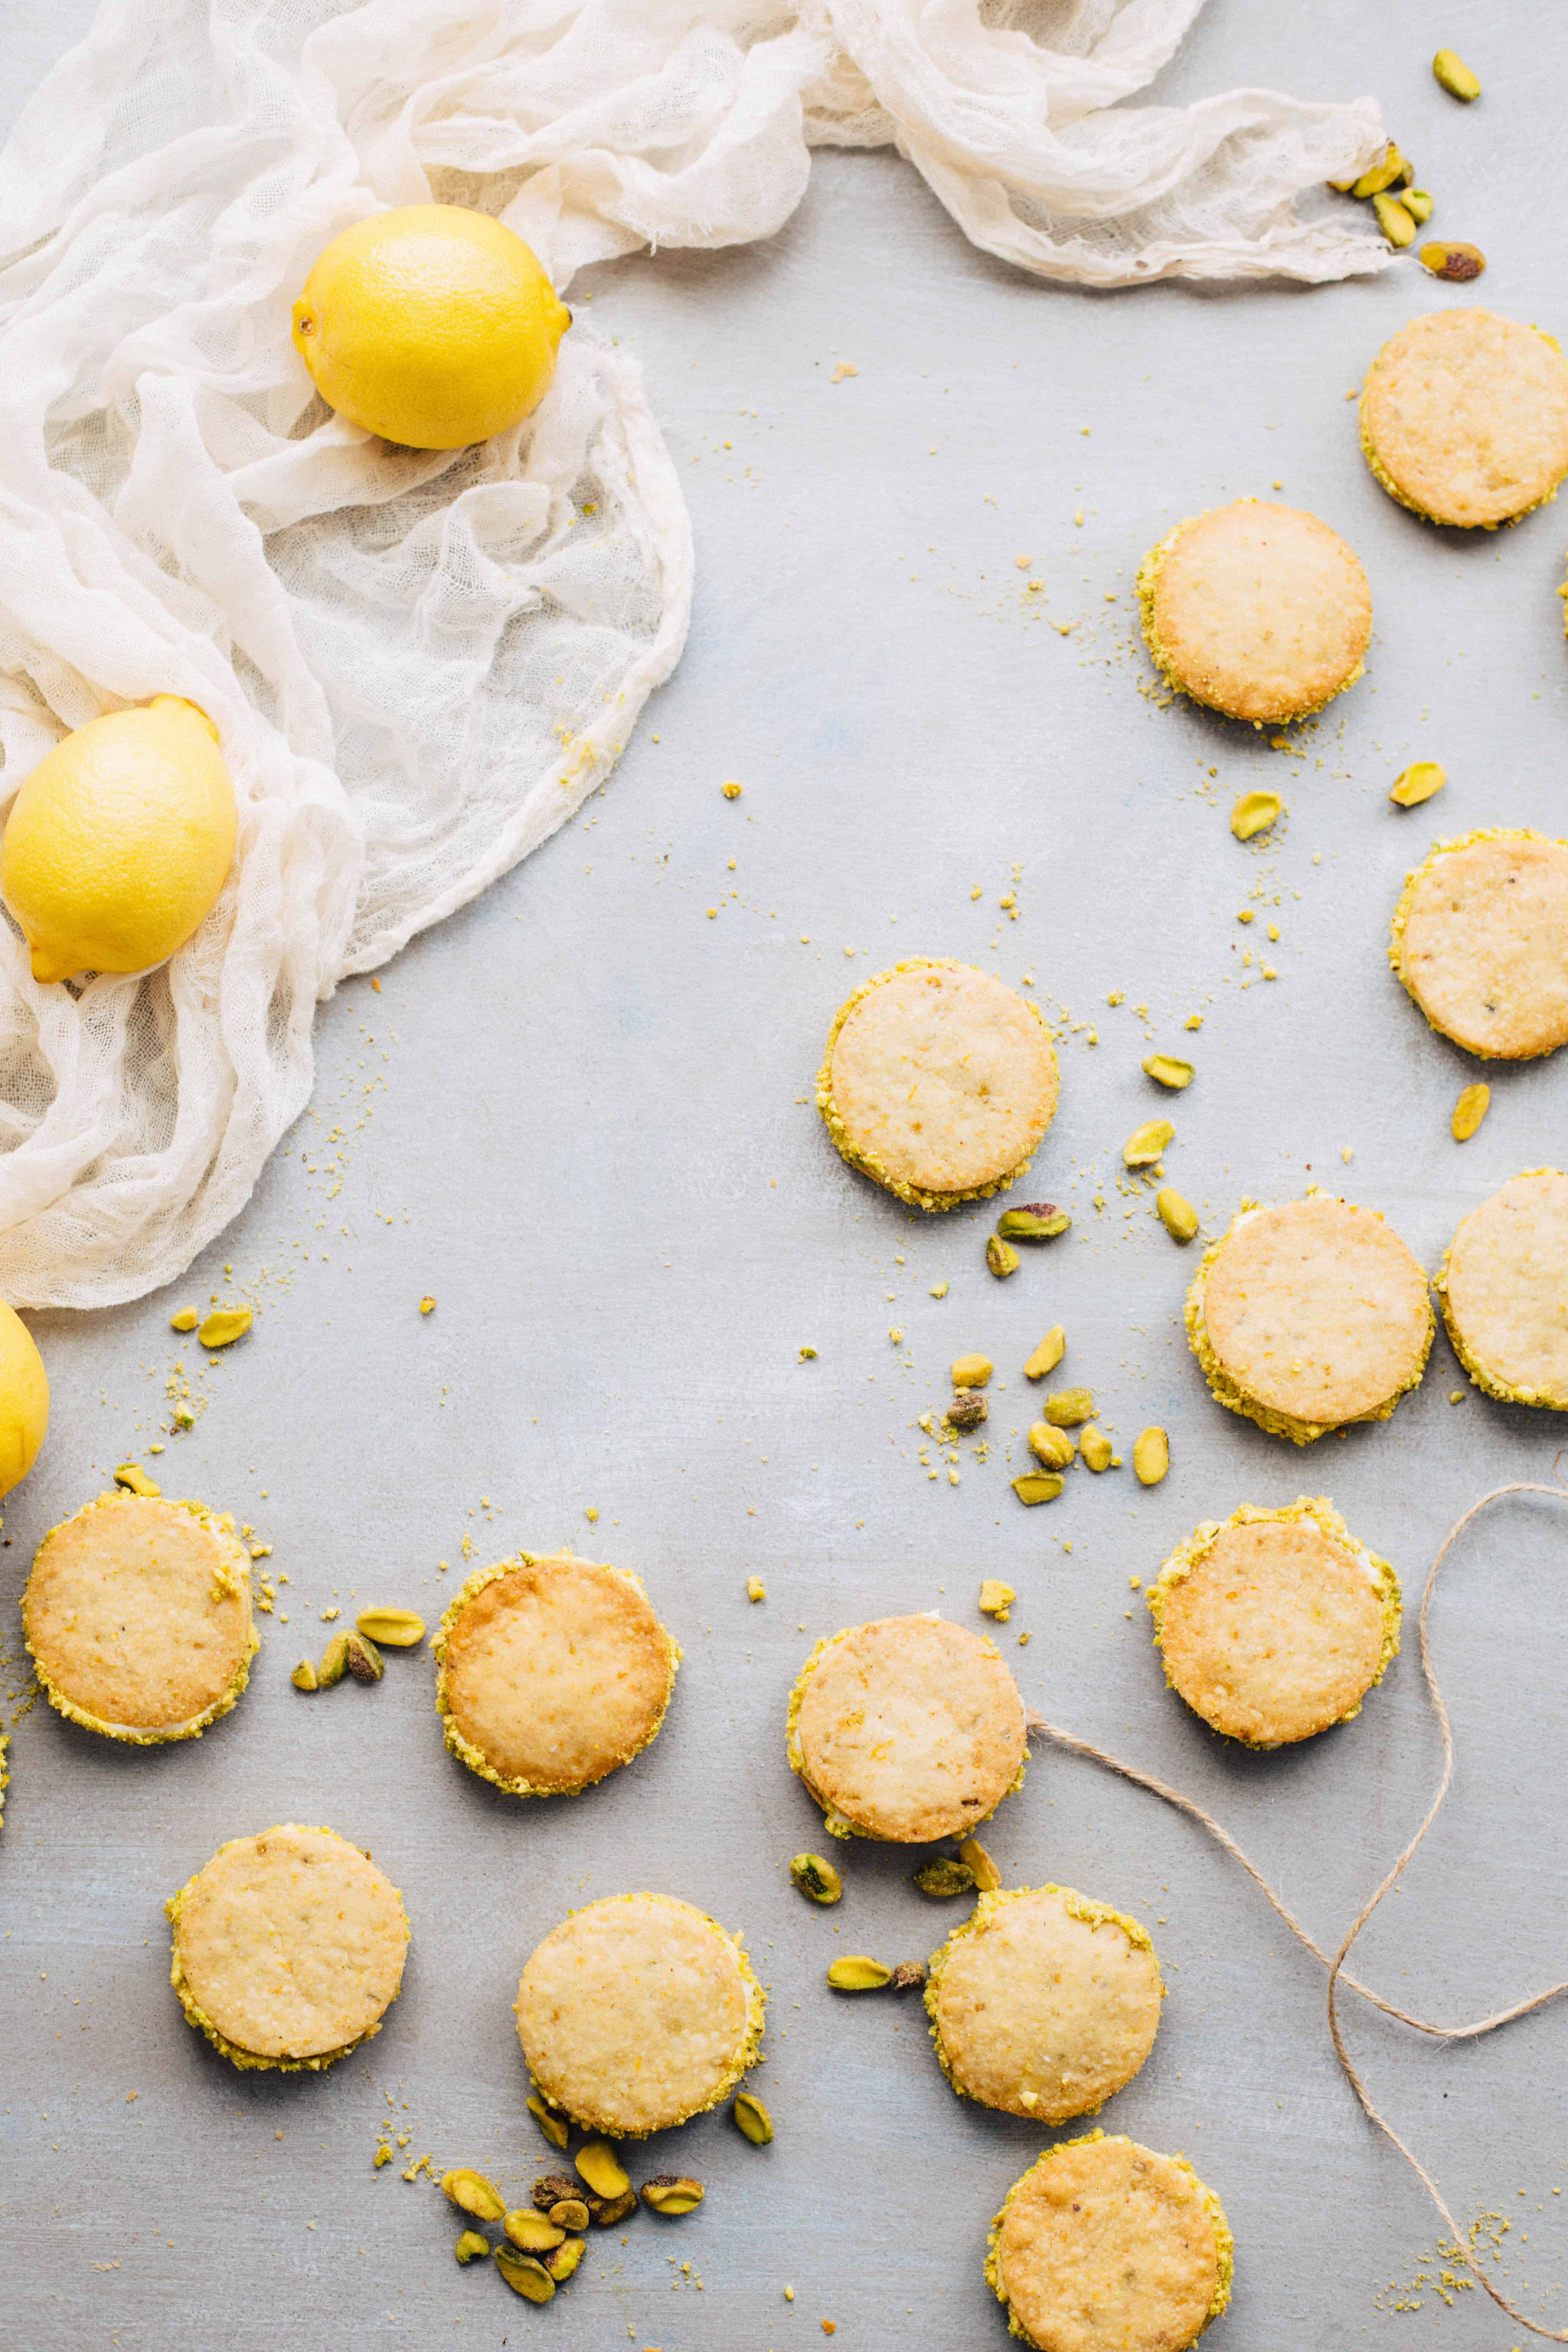 Top view of Meyer lemon pistachio cookies spread on a counter.